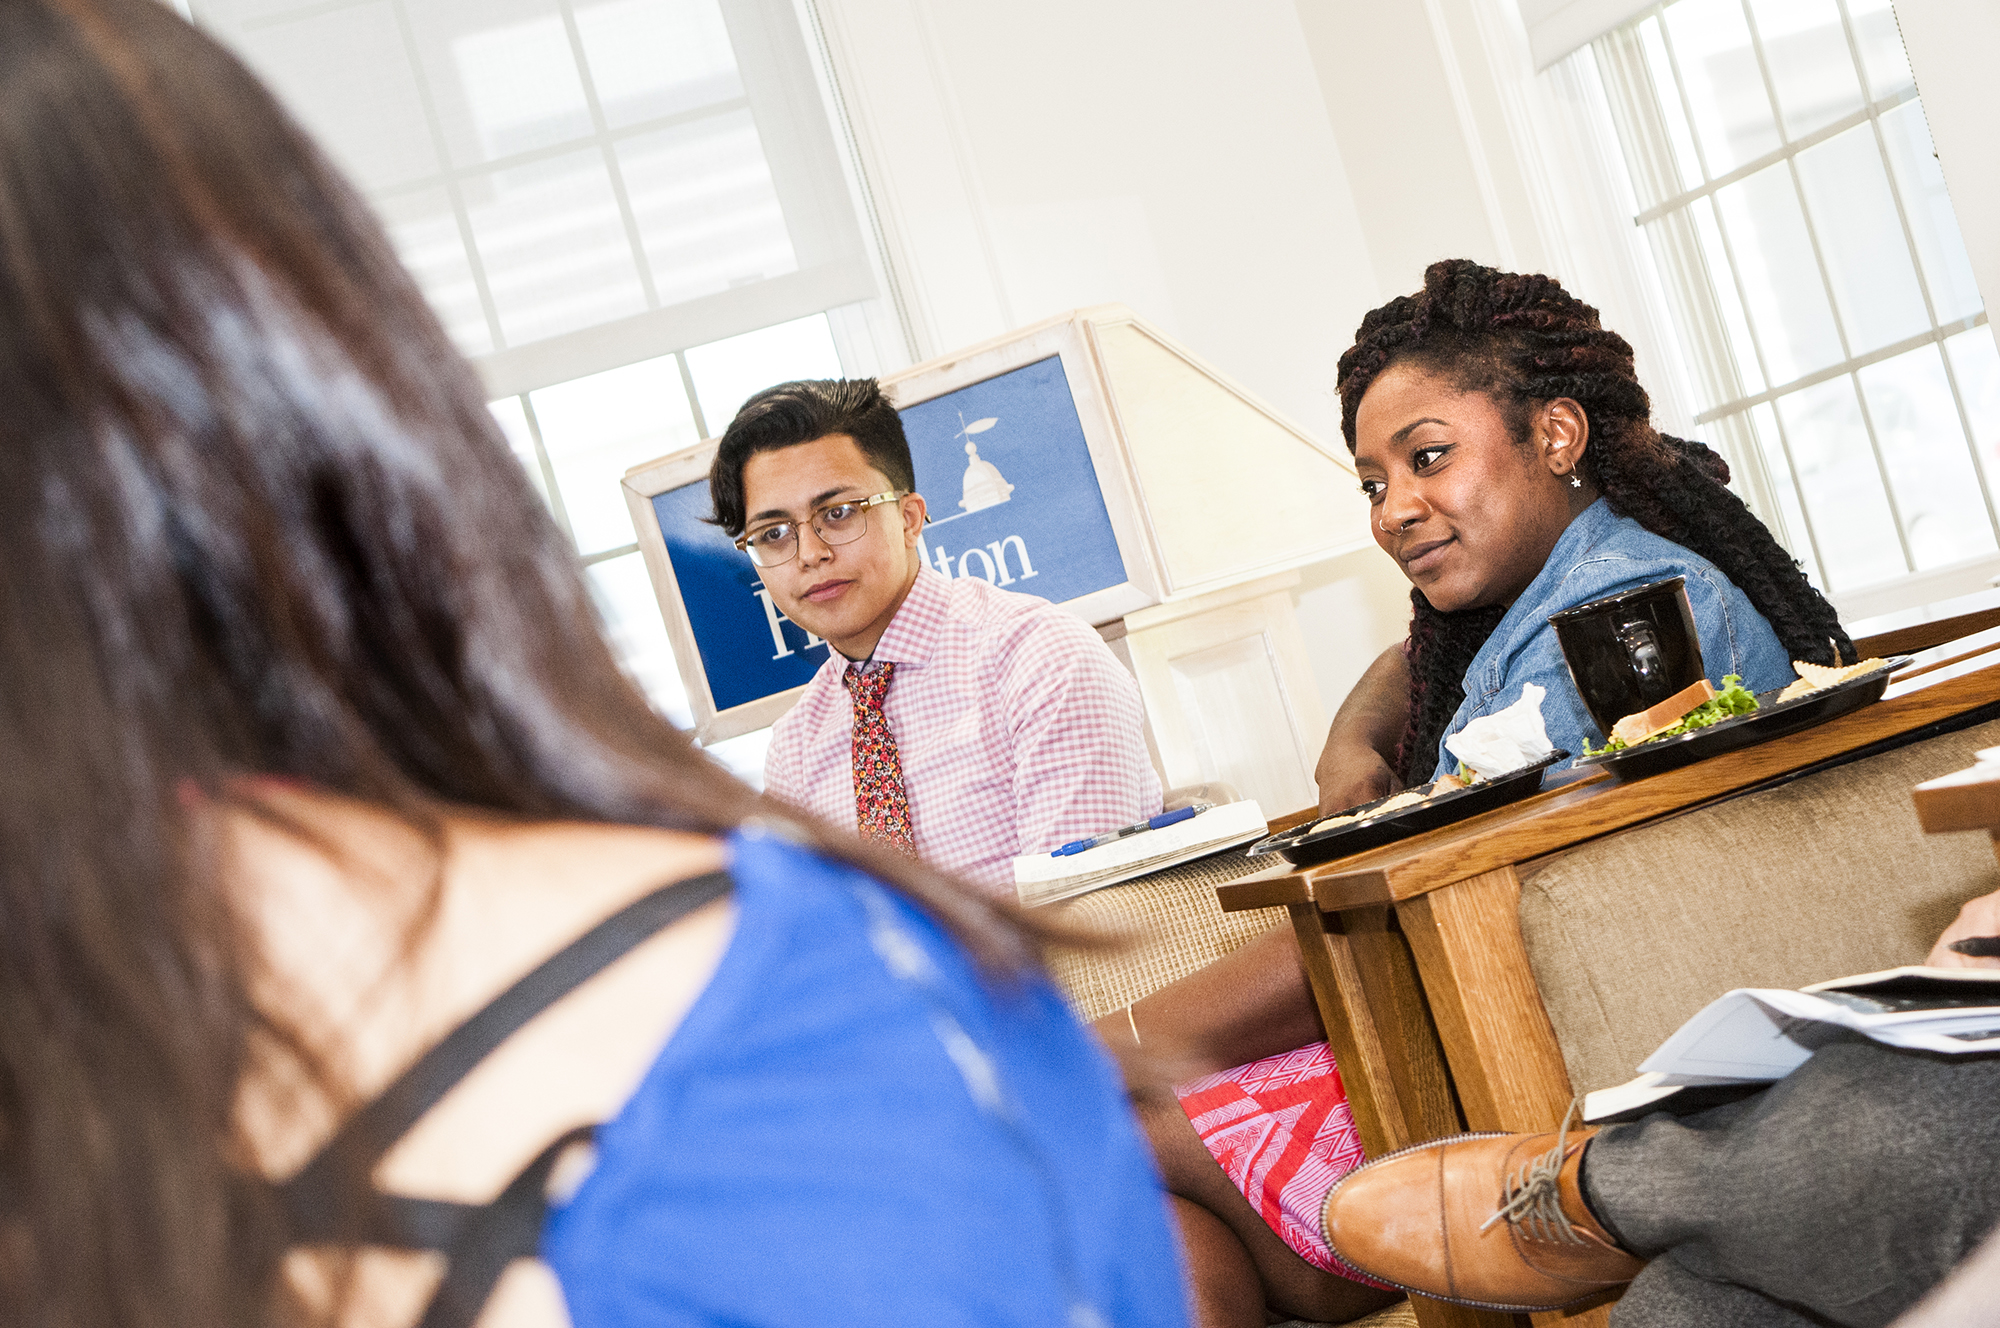 Alicia Garza, right, meets with students in the Days-Massolo Center.